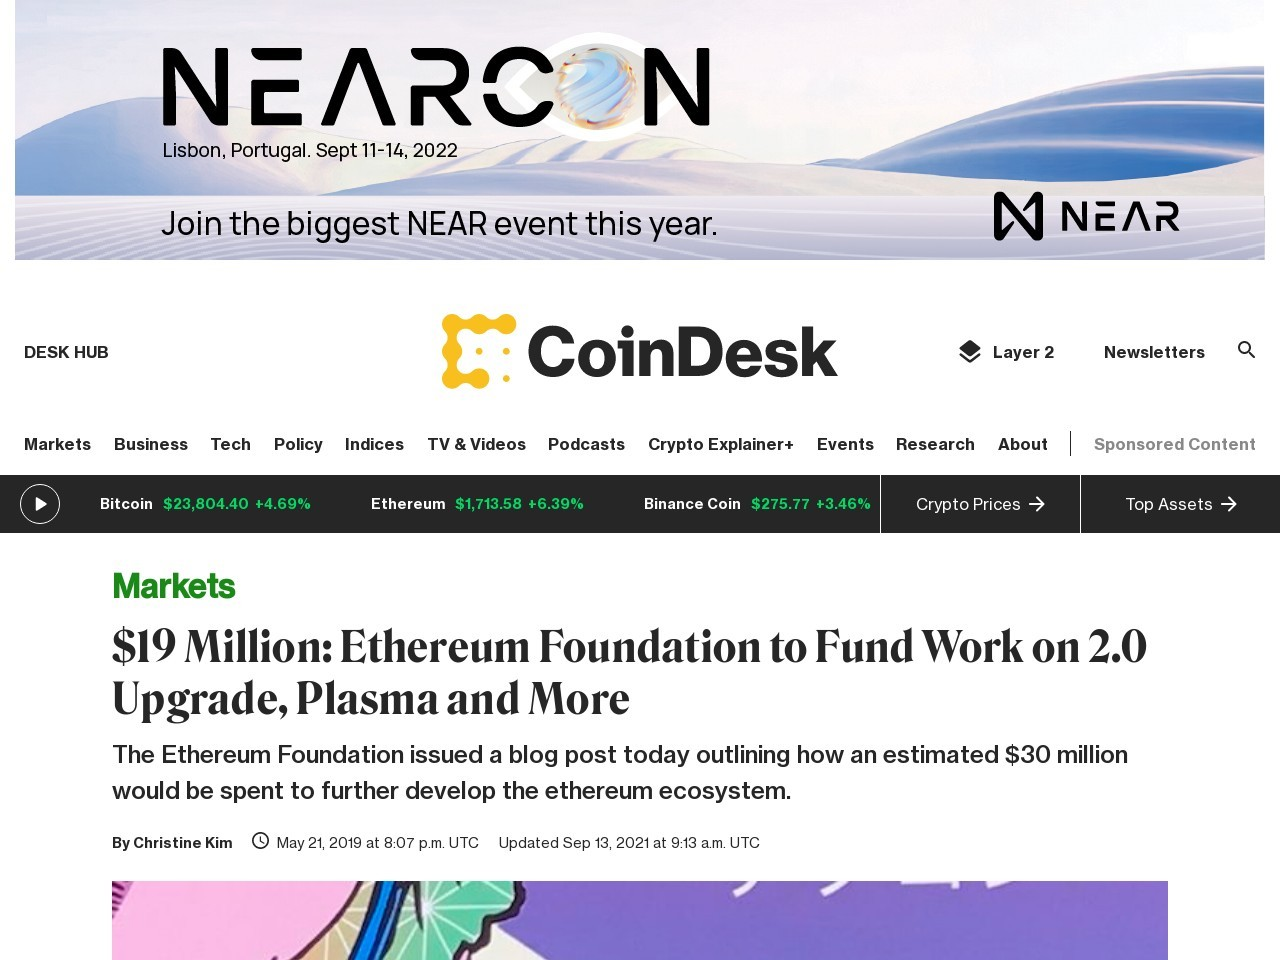 $19 Million: Ethereum Foundation to Fund Work on 2.0 Upgrade, Plasma and More